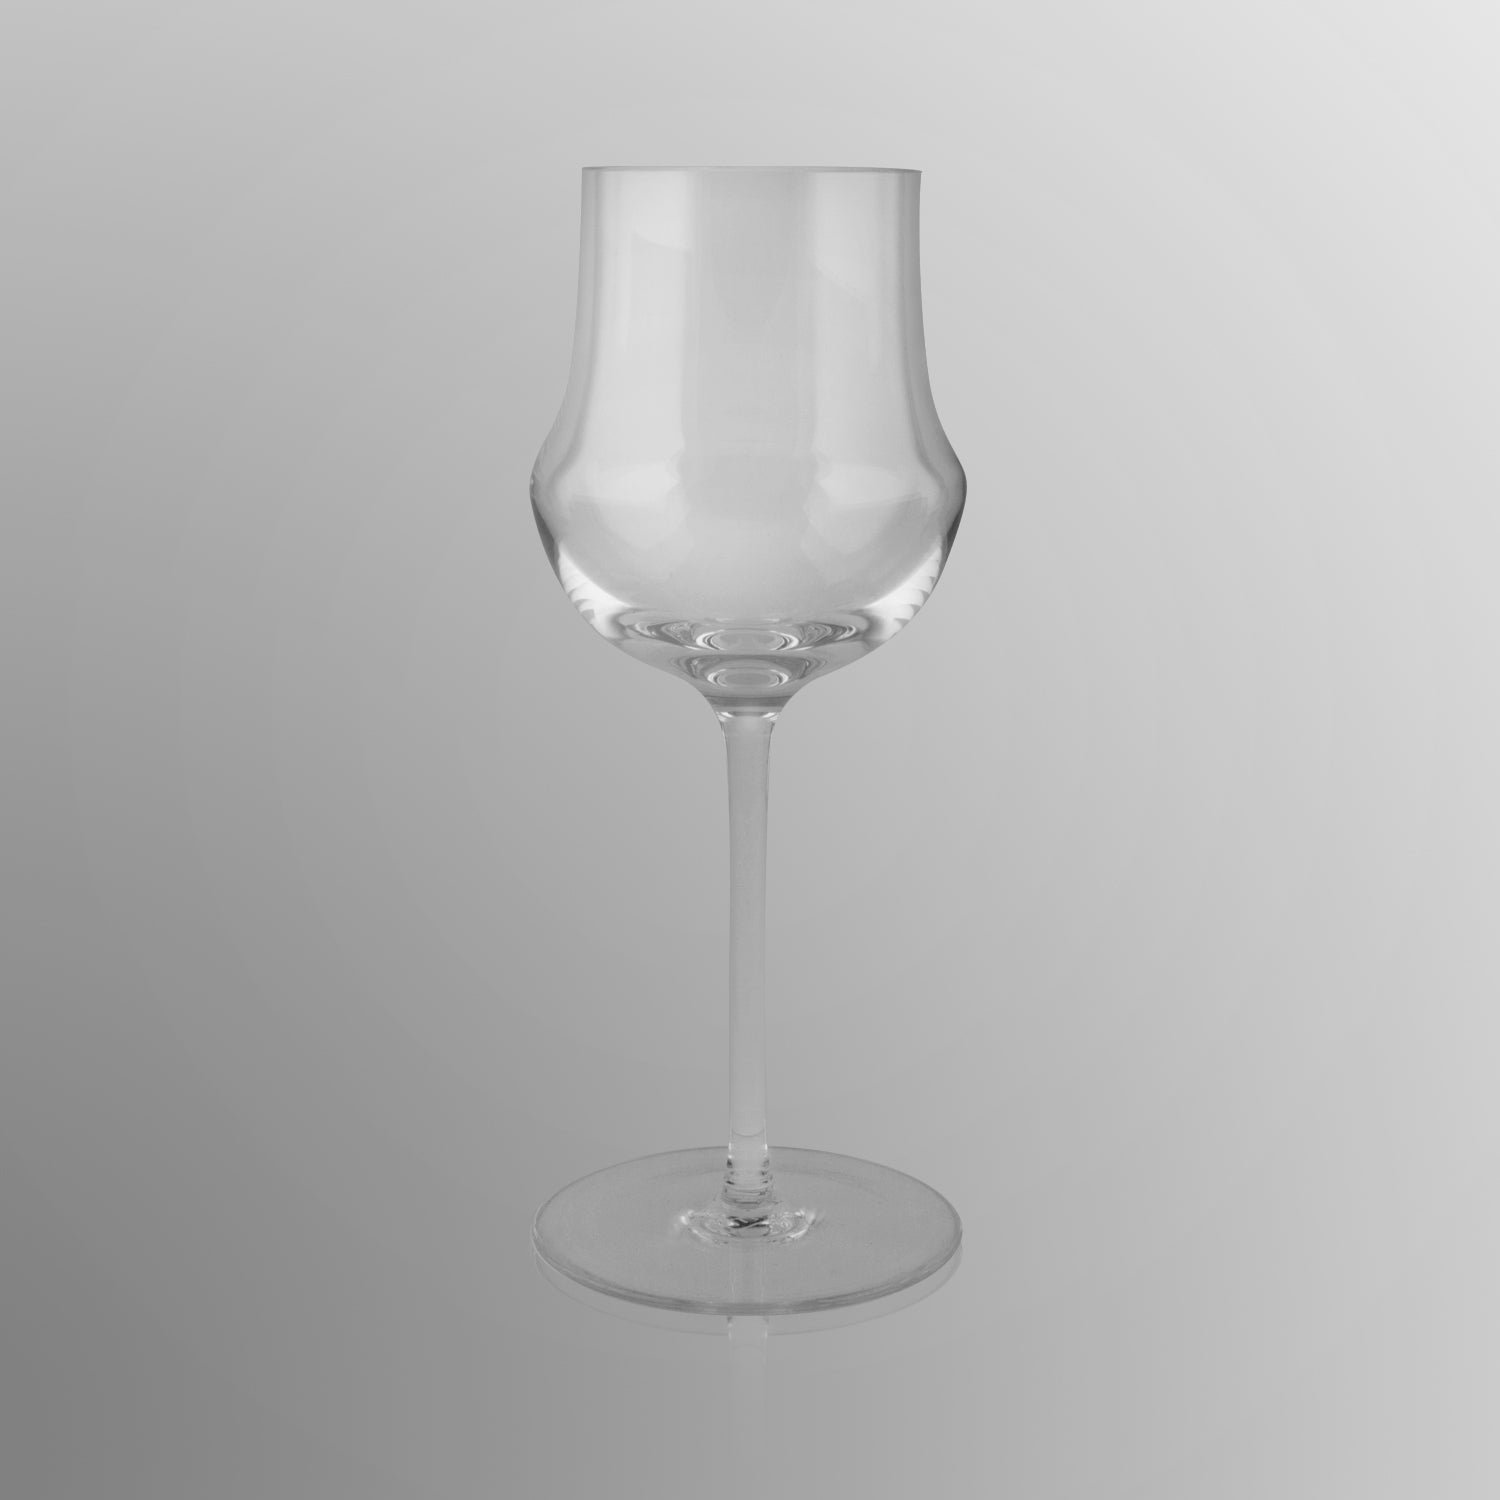 Elitiste White Wine Glasses - Set of 6 by Extranorm